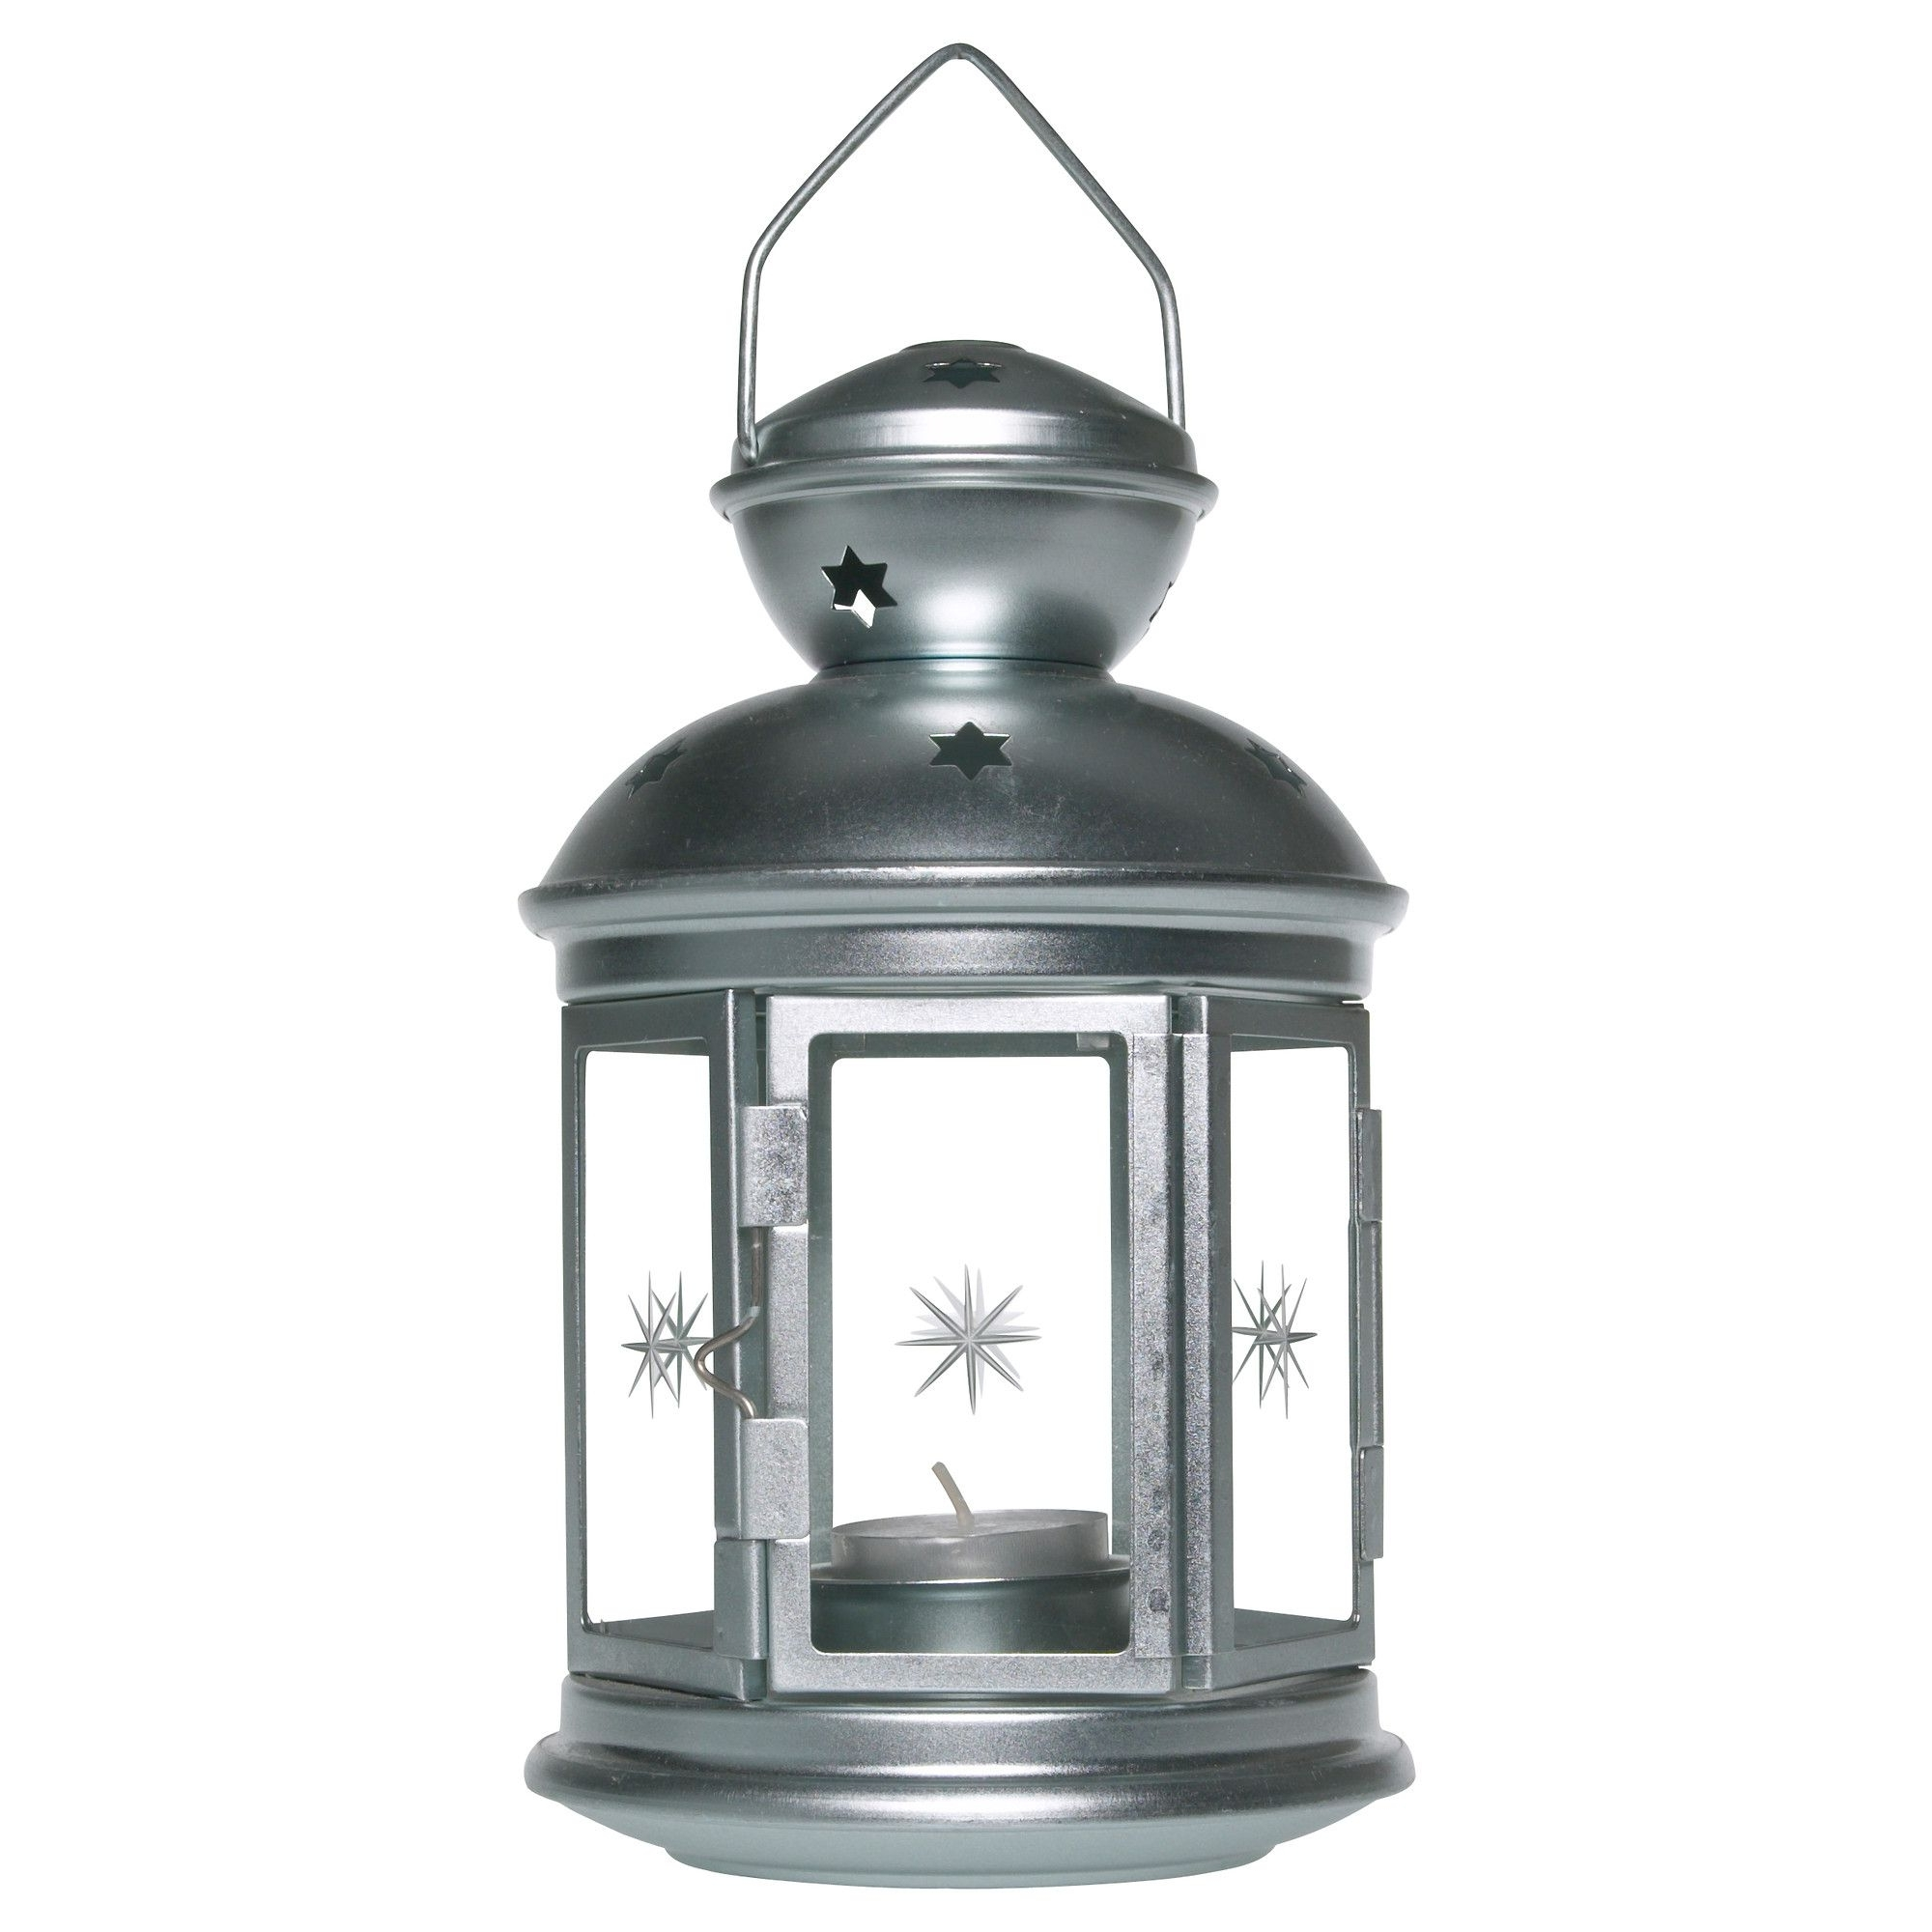 Rotera Lantern For Tealight, Galvanized Indoor/outdoor Galvanized Pertaining To Current Hanging Outdoor Tea Light Lanterns (View 16 of 20)